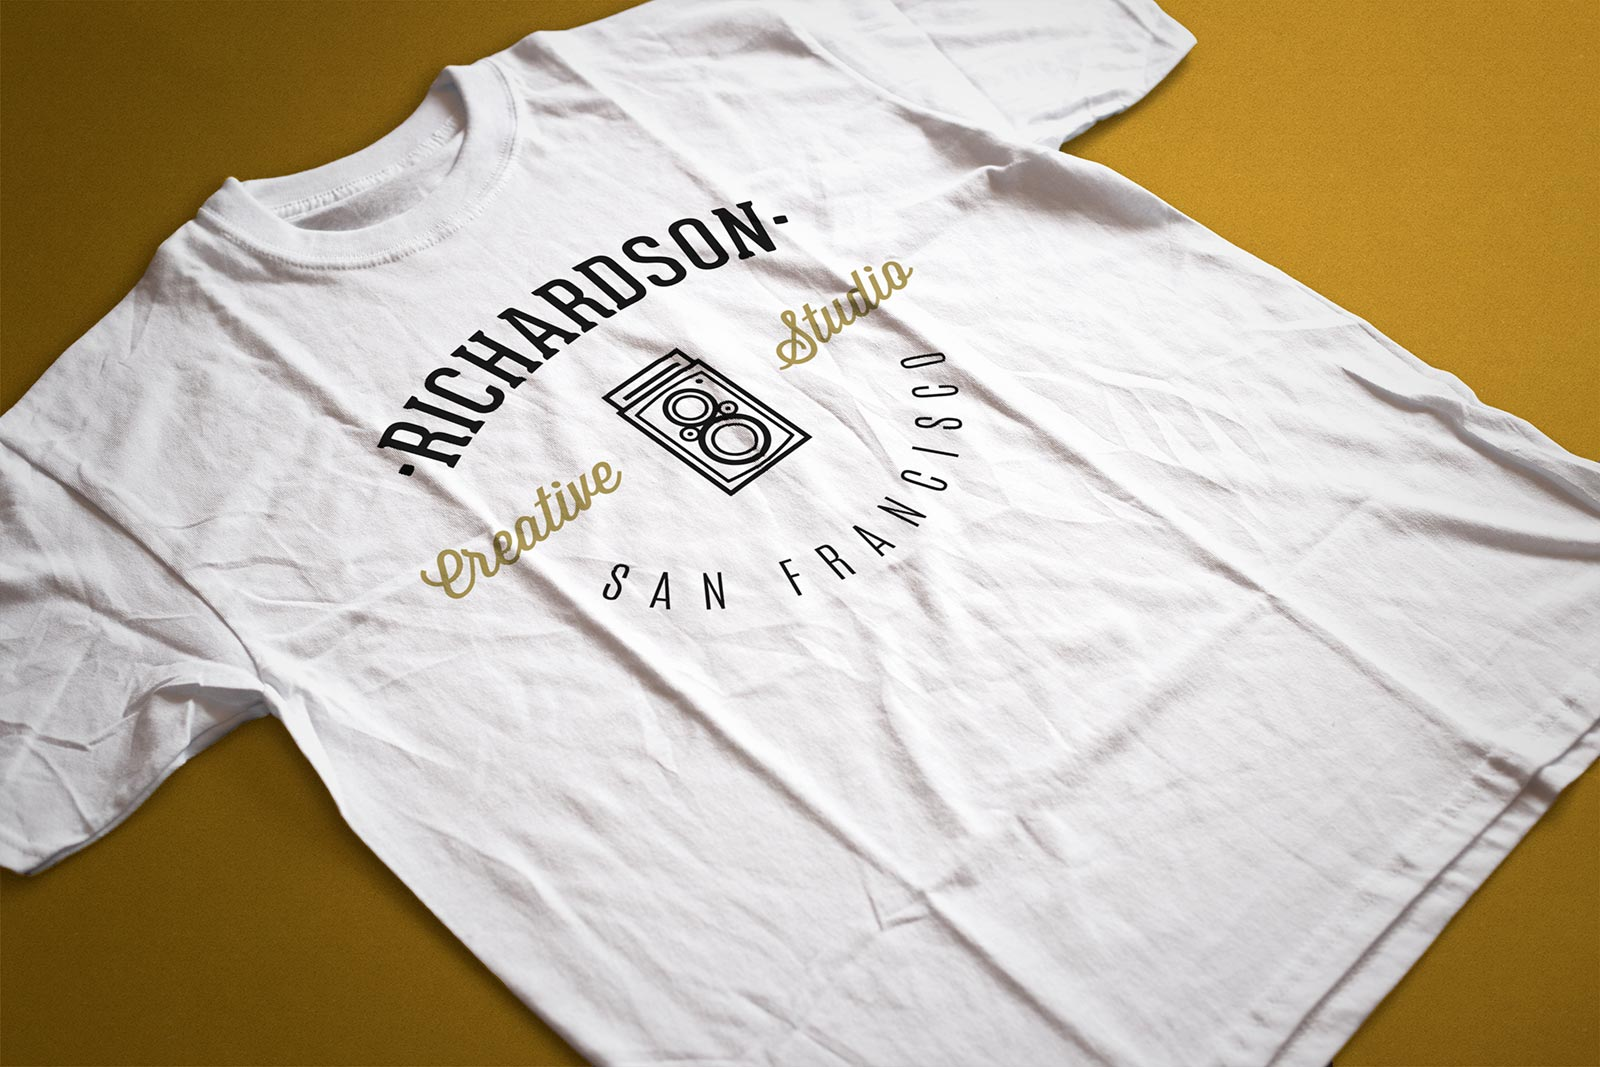 Free-Half-Sleeves-Pressed-T-Shirt-Mockup-PSD